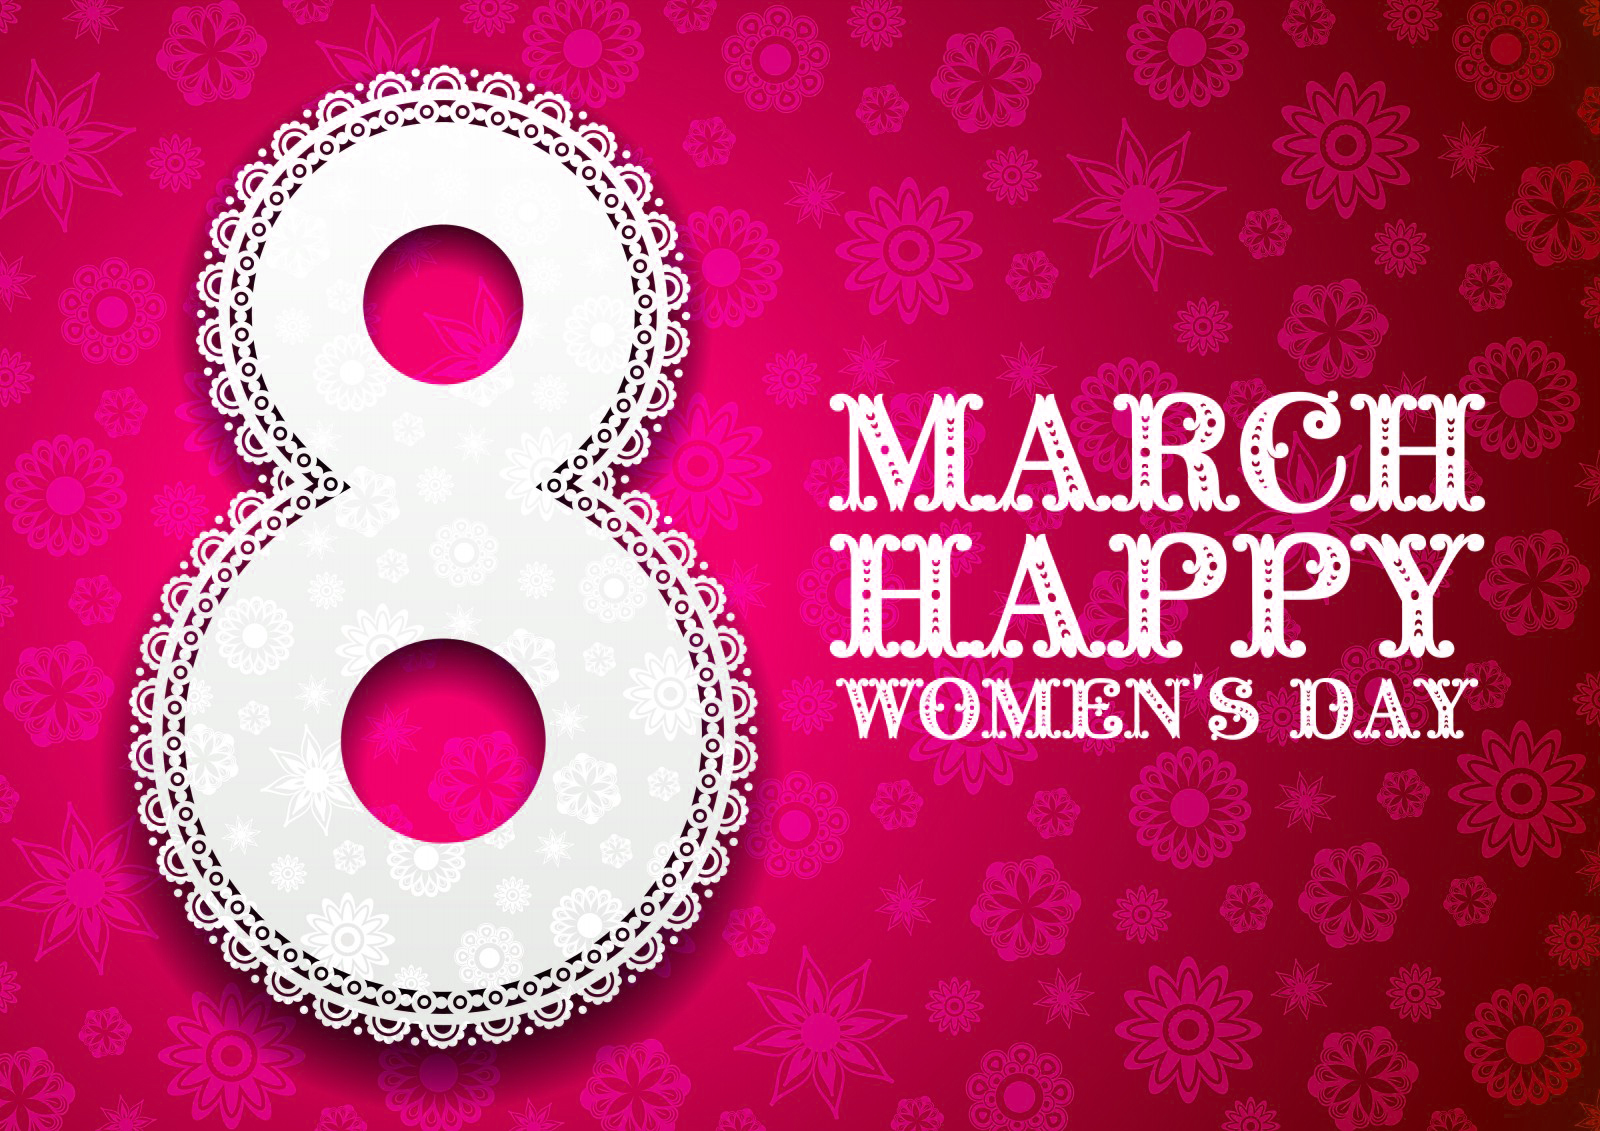 womens day There may come a day when women don't have to be celebrated — when every day is women's day.